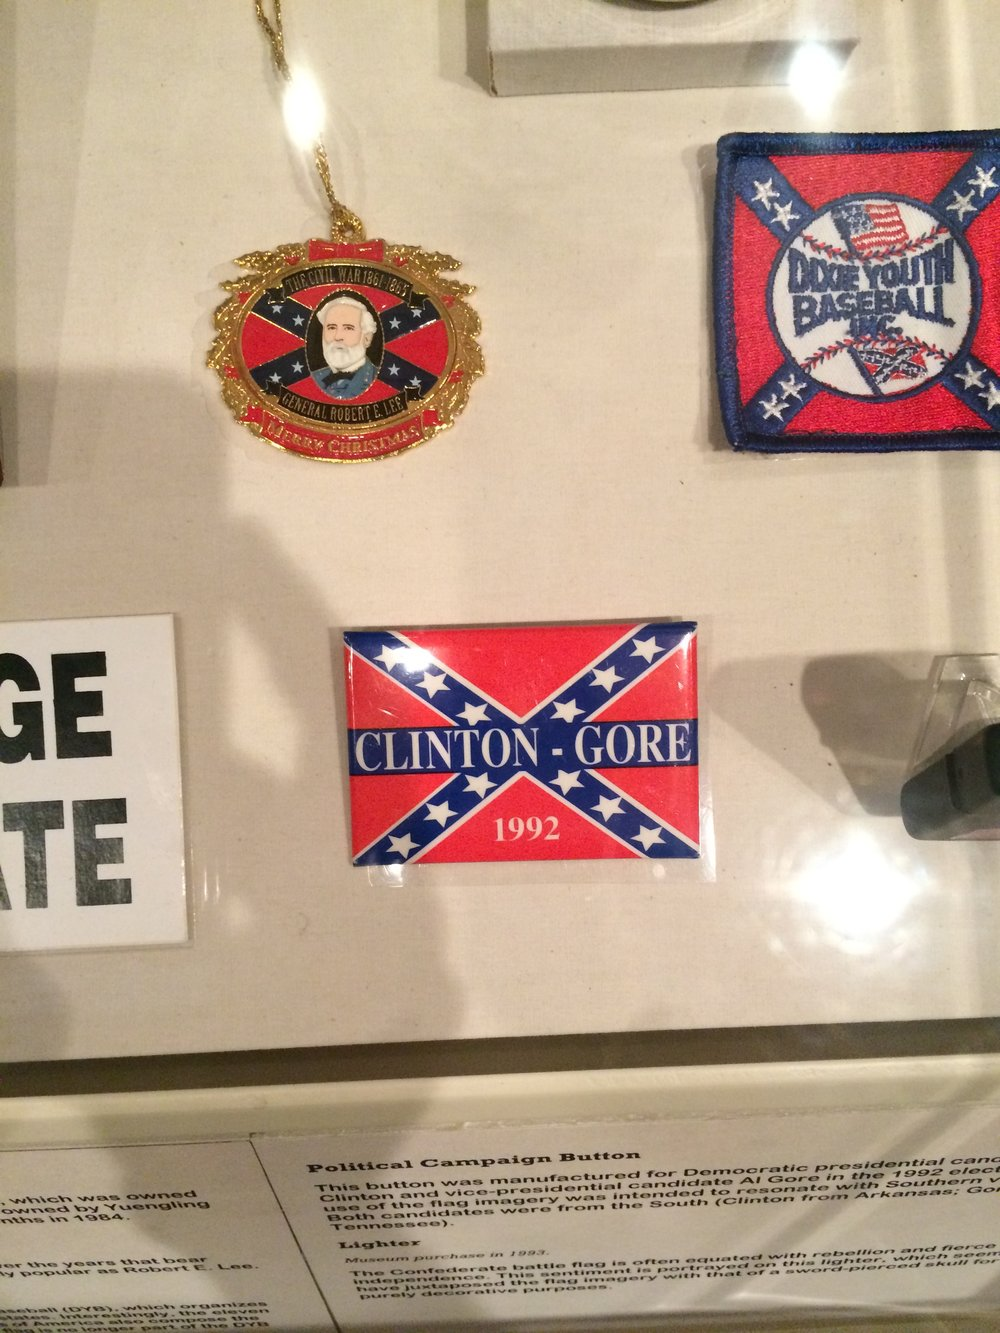 An assortment of objects incorporating the ANV flag into their design, including a 1992 Clinton-Gore campaign button, at the Museum of the Confederacy.